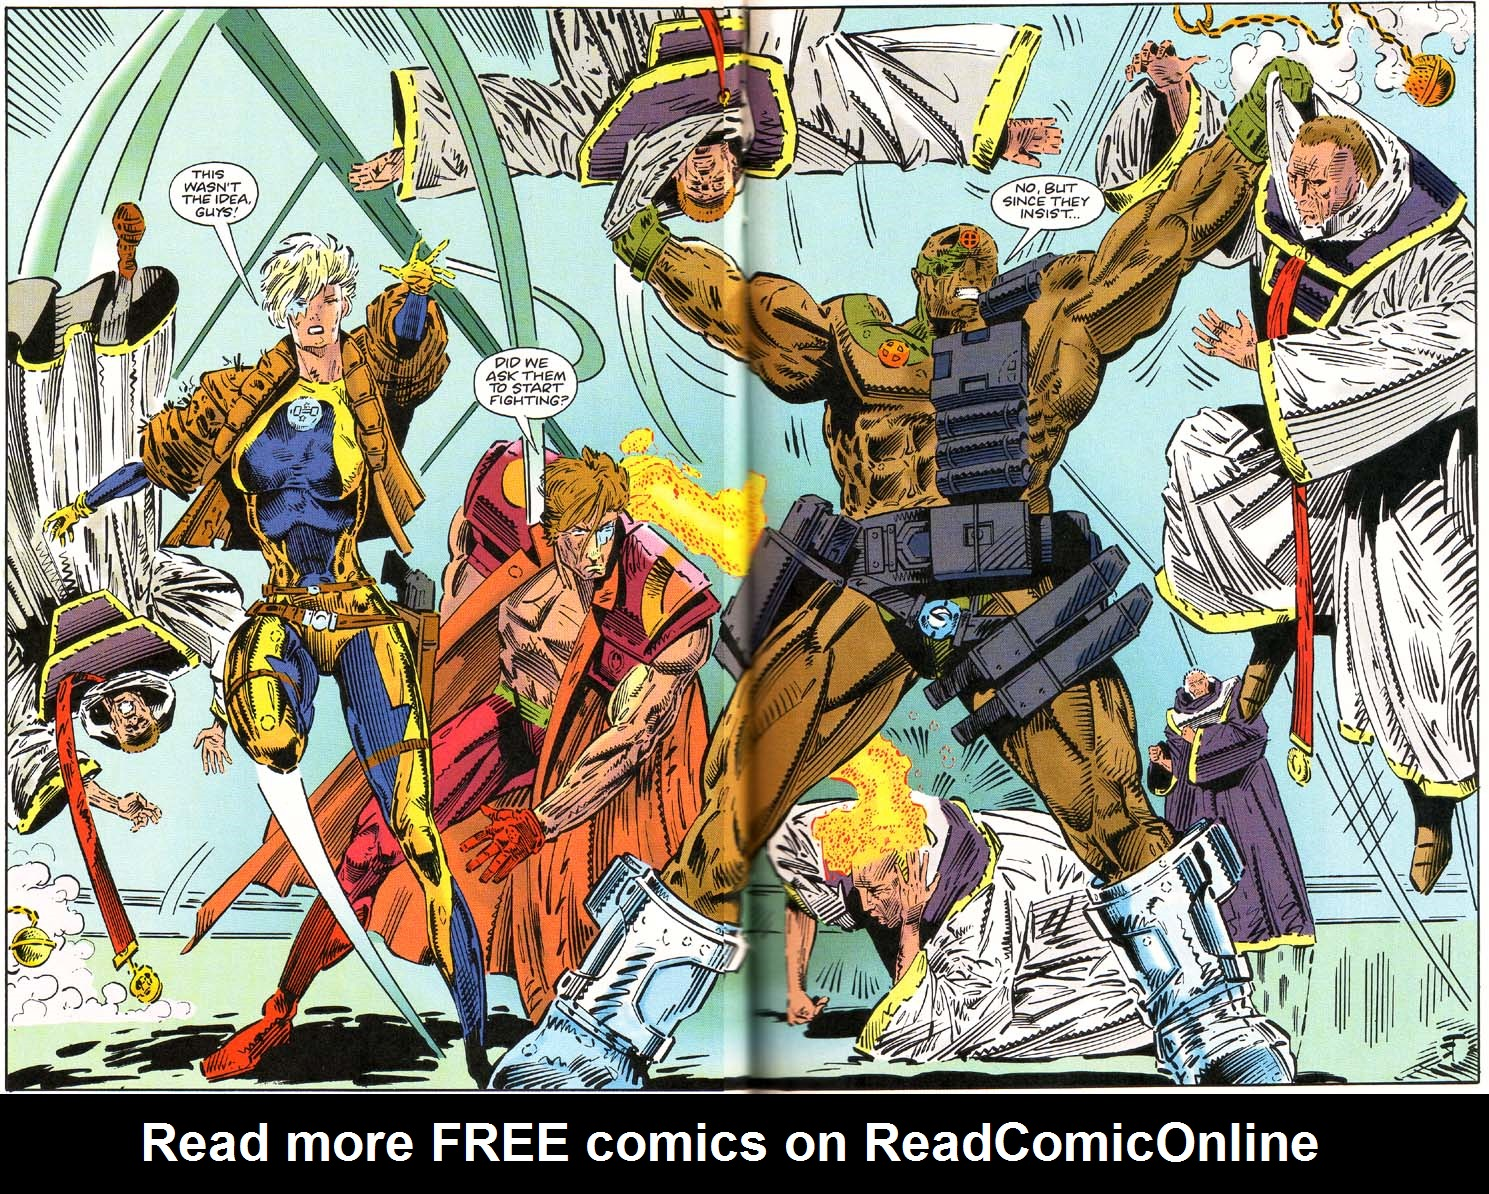 Read online Cyberspace 3000 comic -  Issue #1 - 17